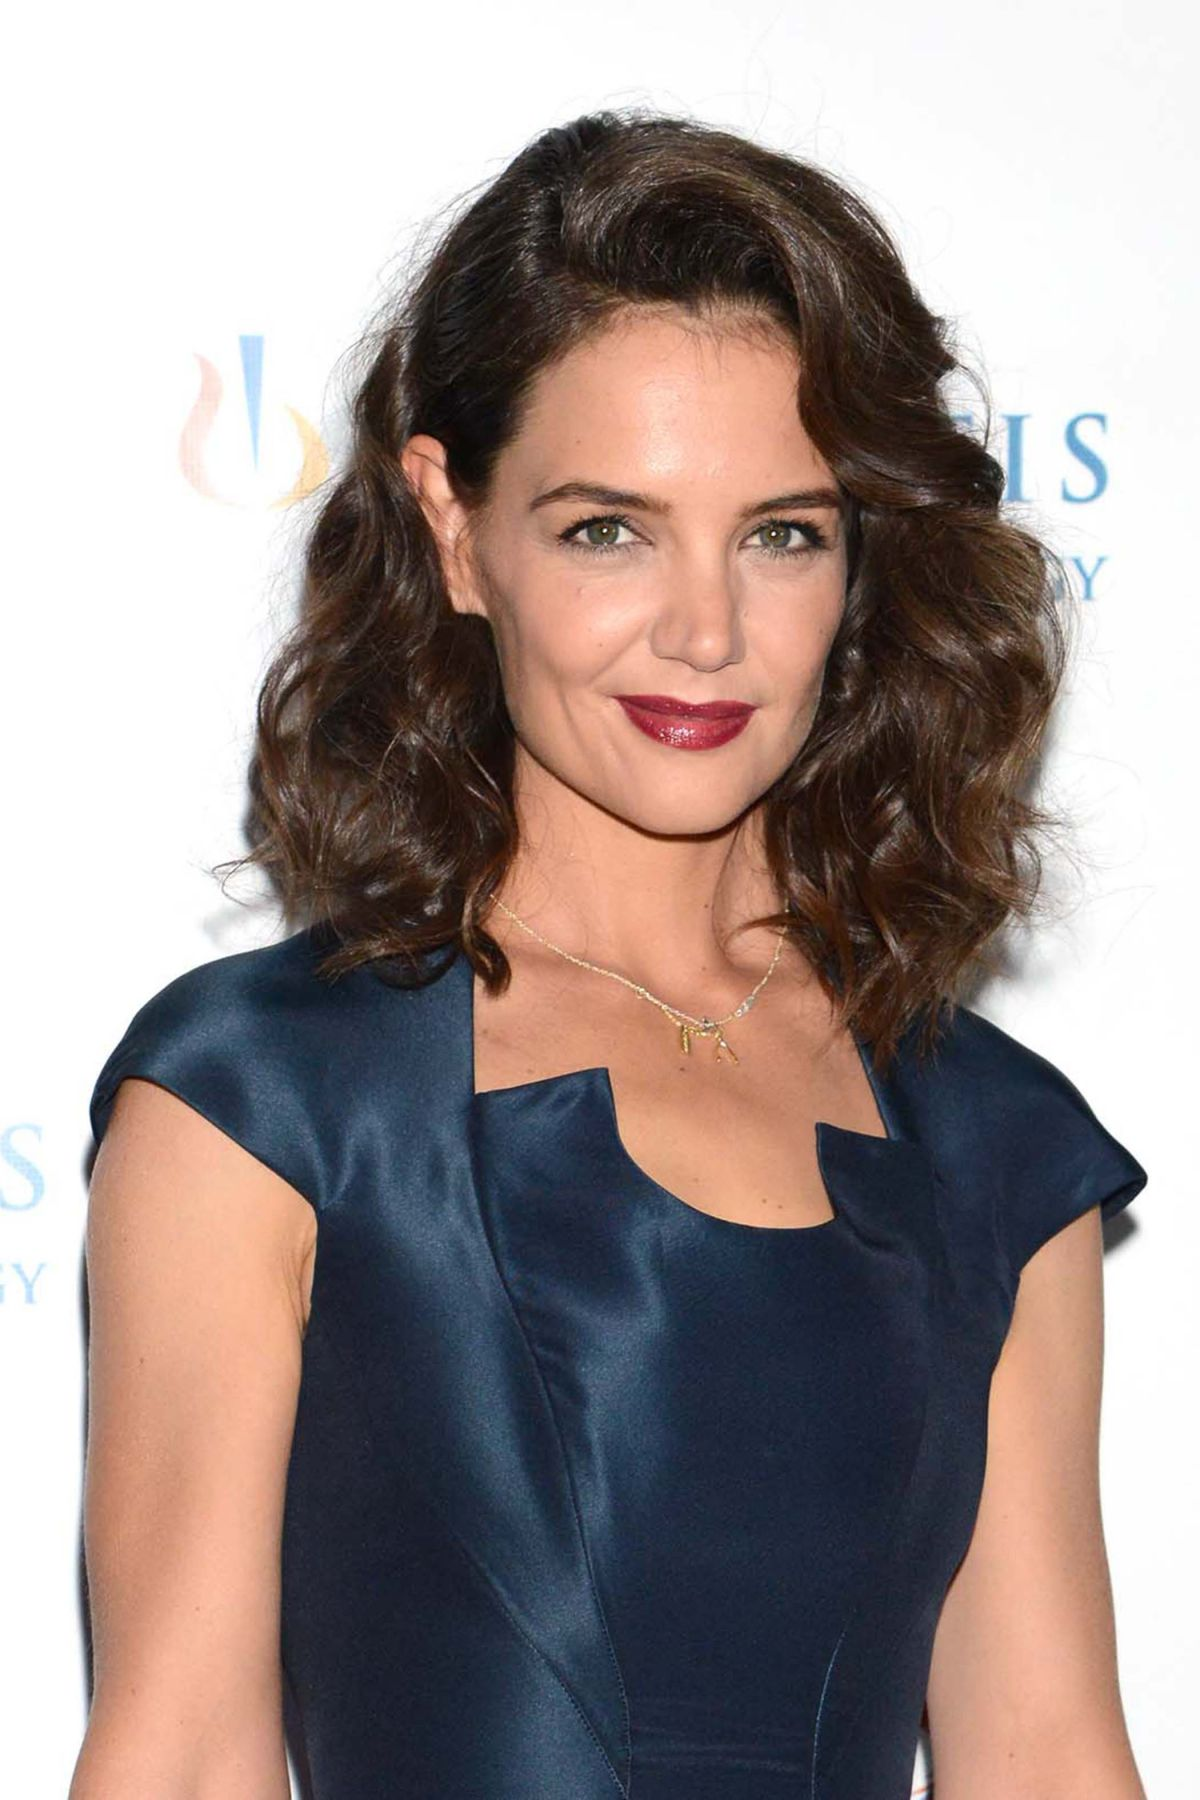 KATIE HOLMES at 2015 Skin Cancer Foundation Gala in New York 10/22/2015